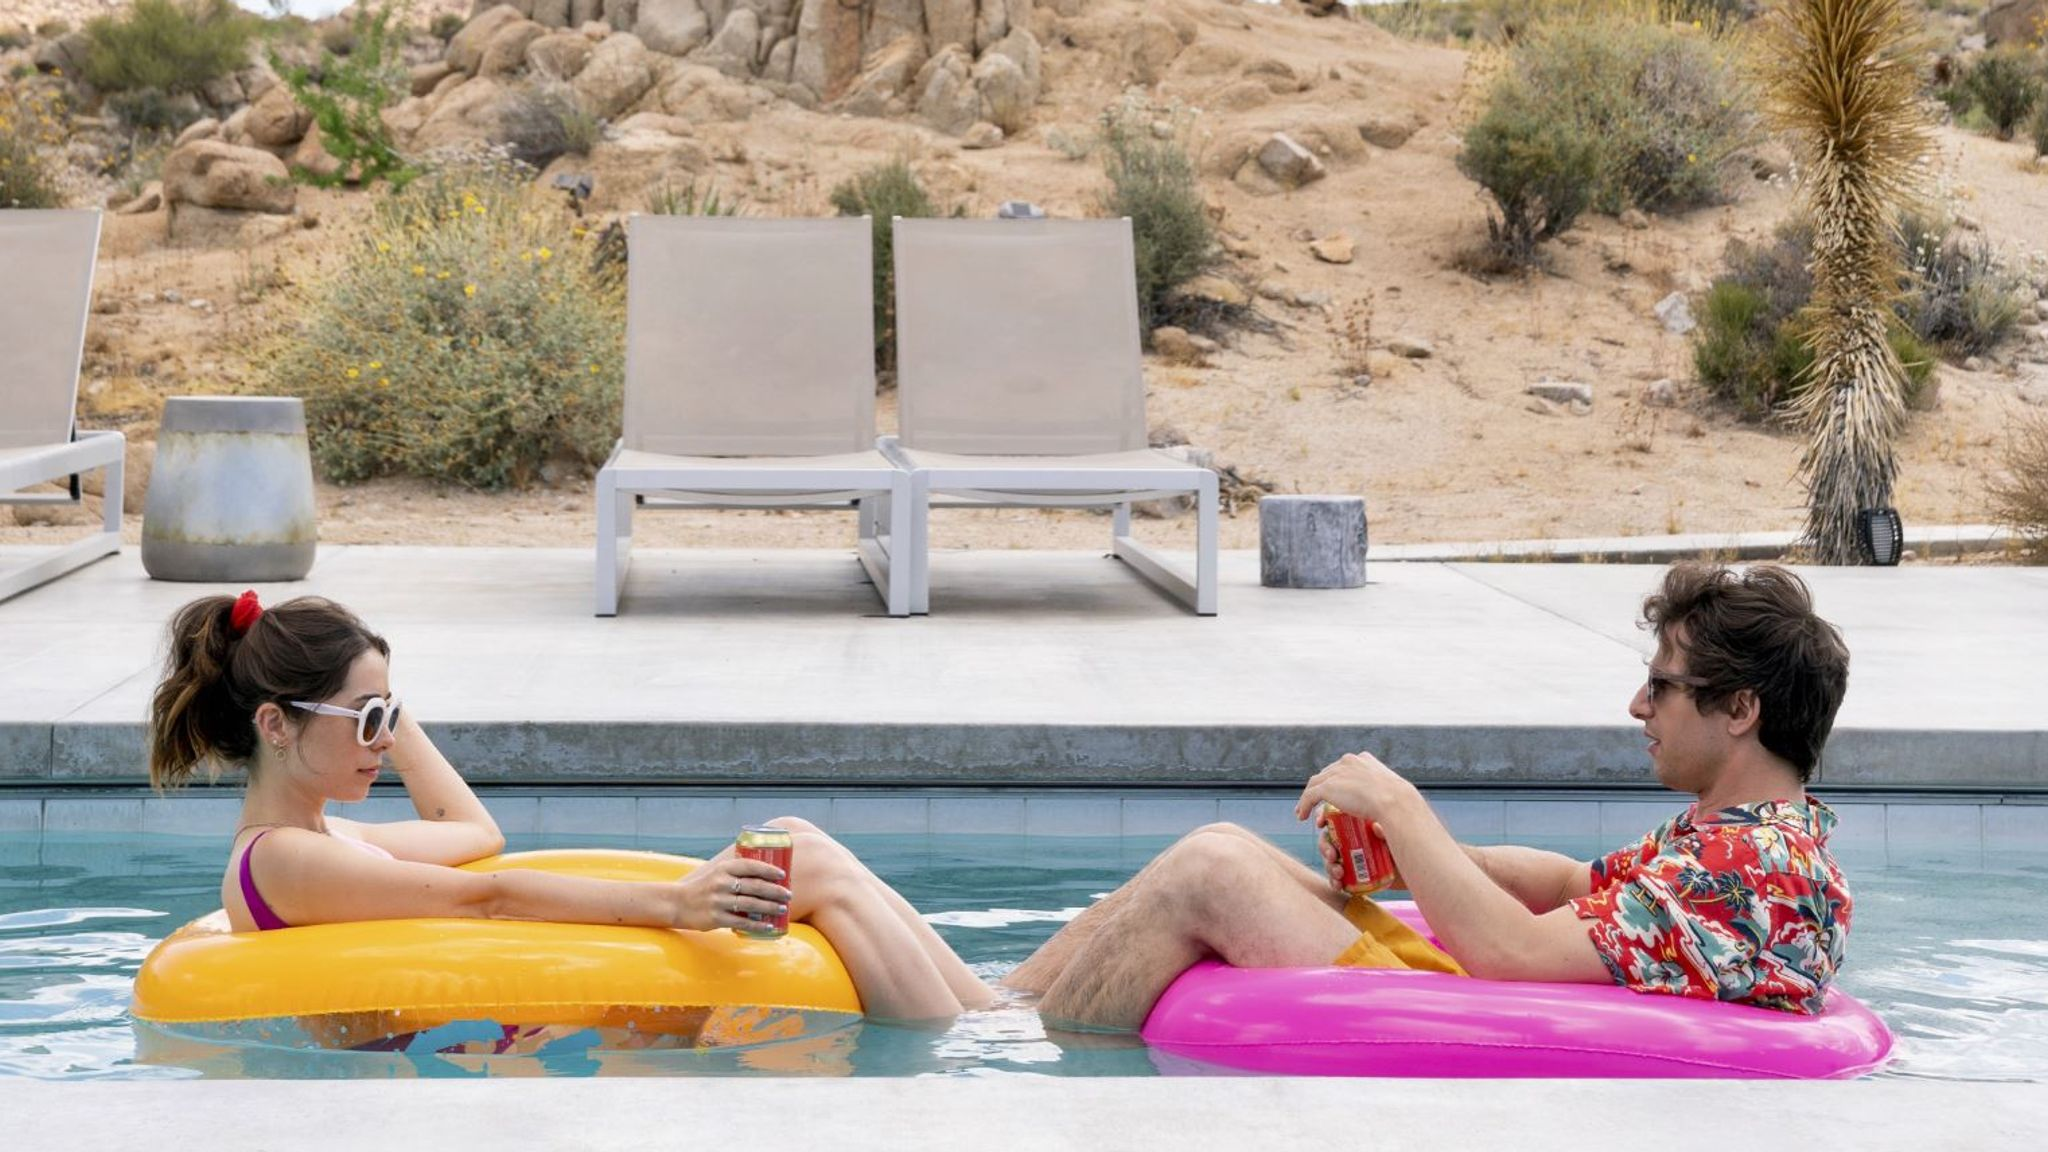 Palm Springs is coming to Amazon Prime Video UK in 2021